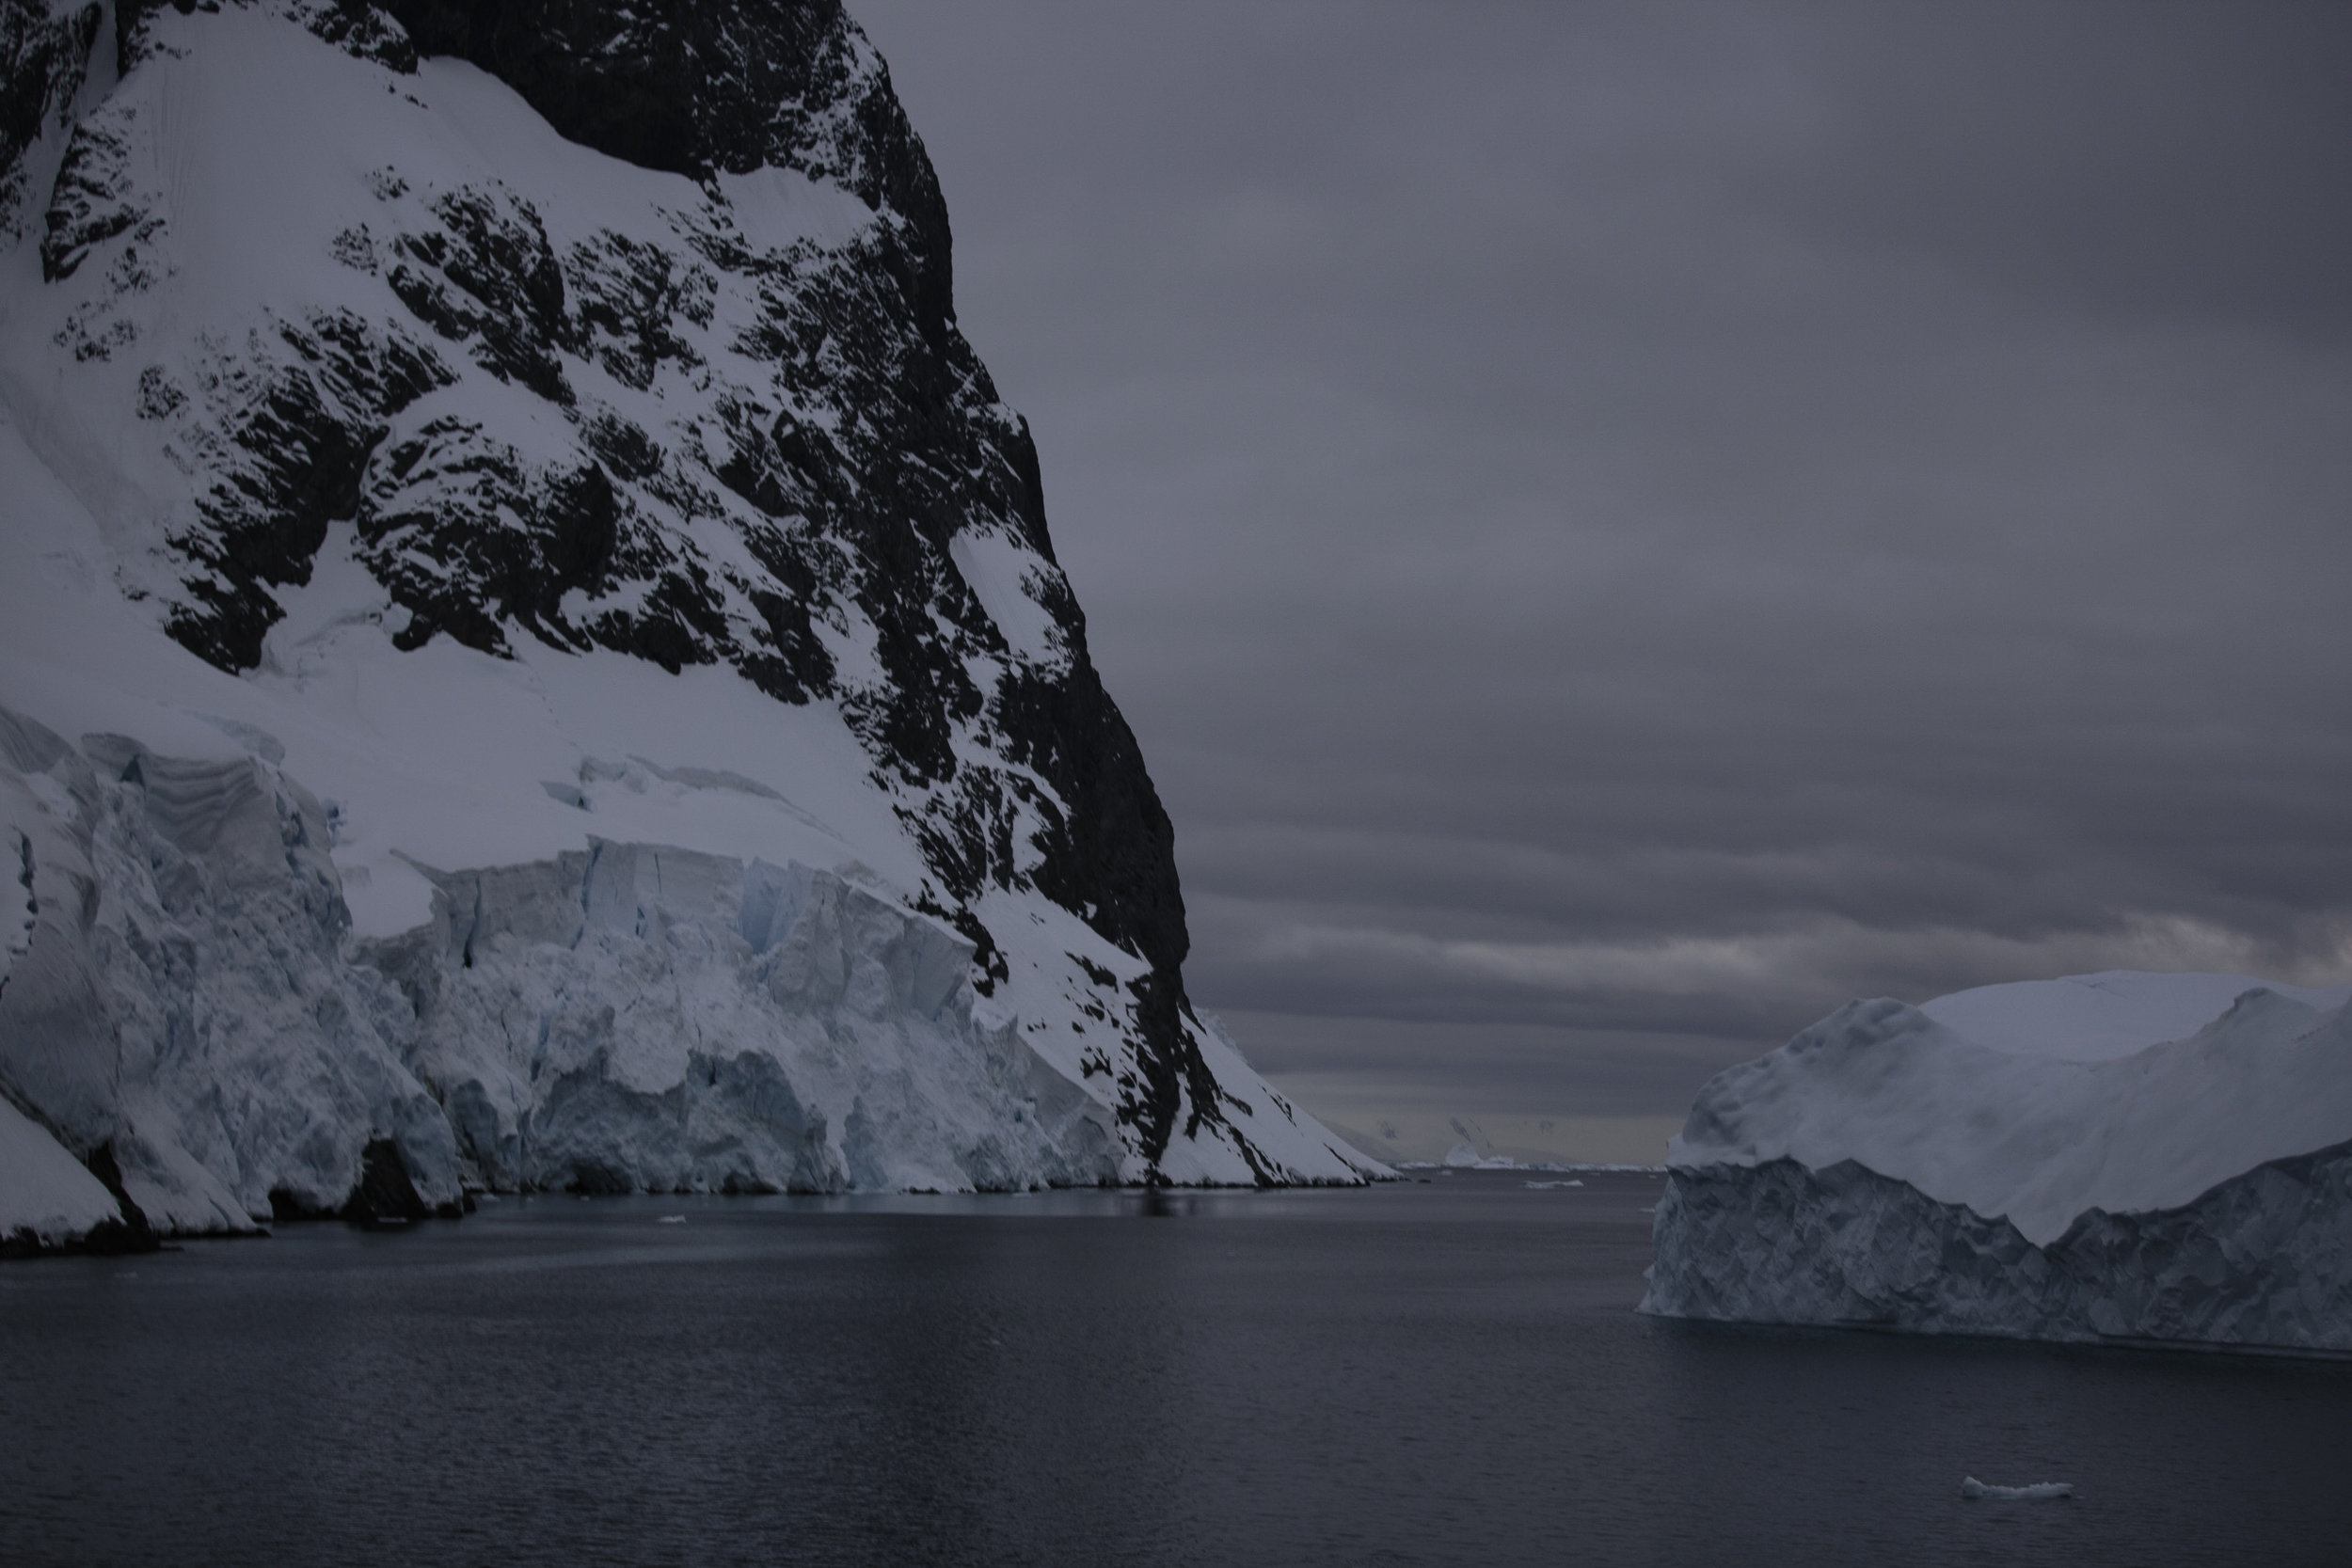 The Lemaire Channel almost completely blocked by icebergs floating into it.